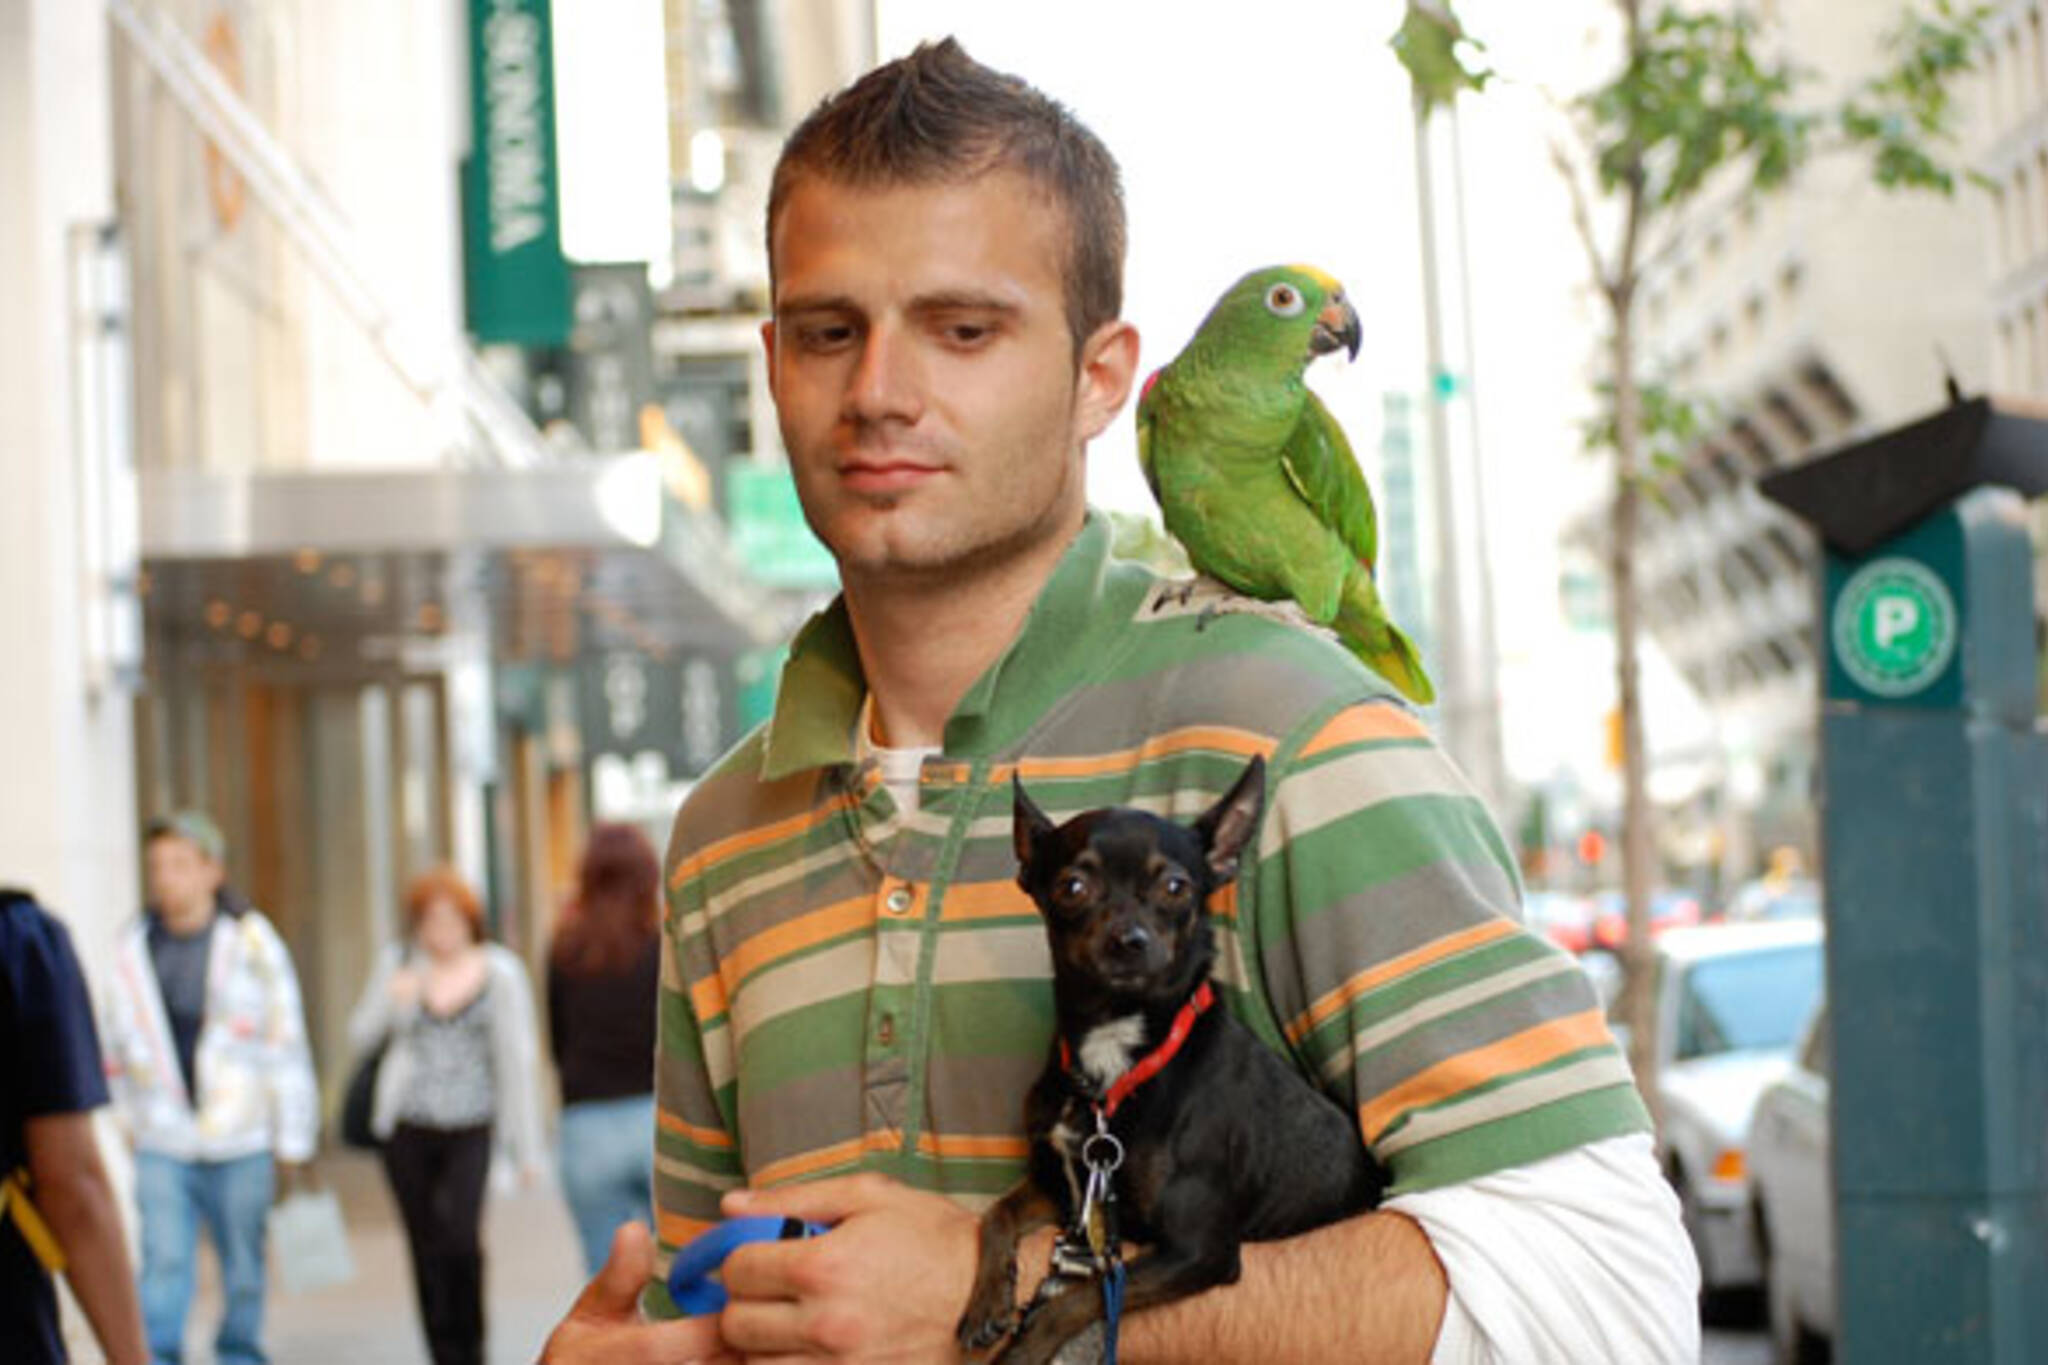 Parrot for hire